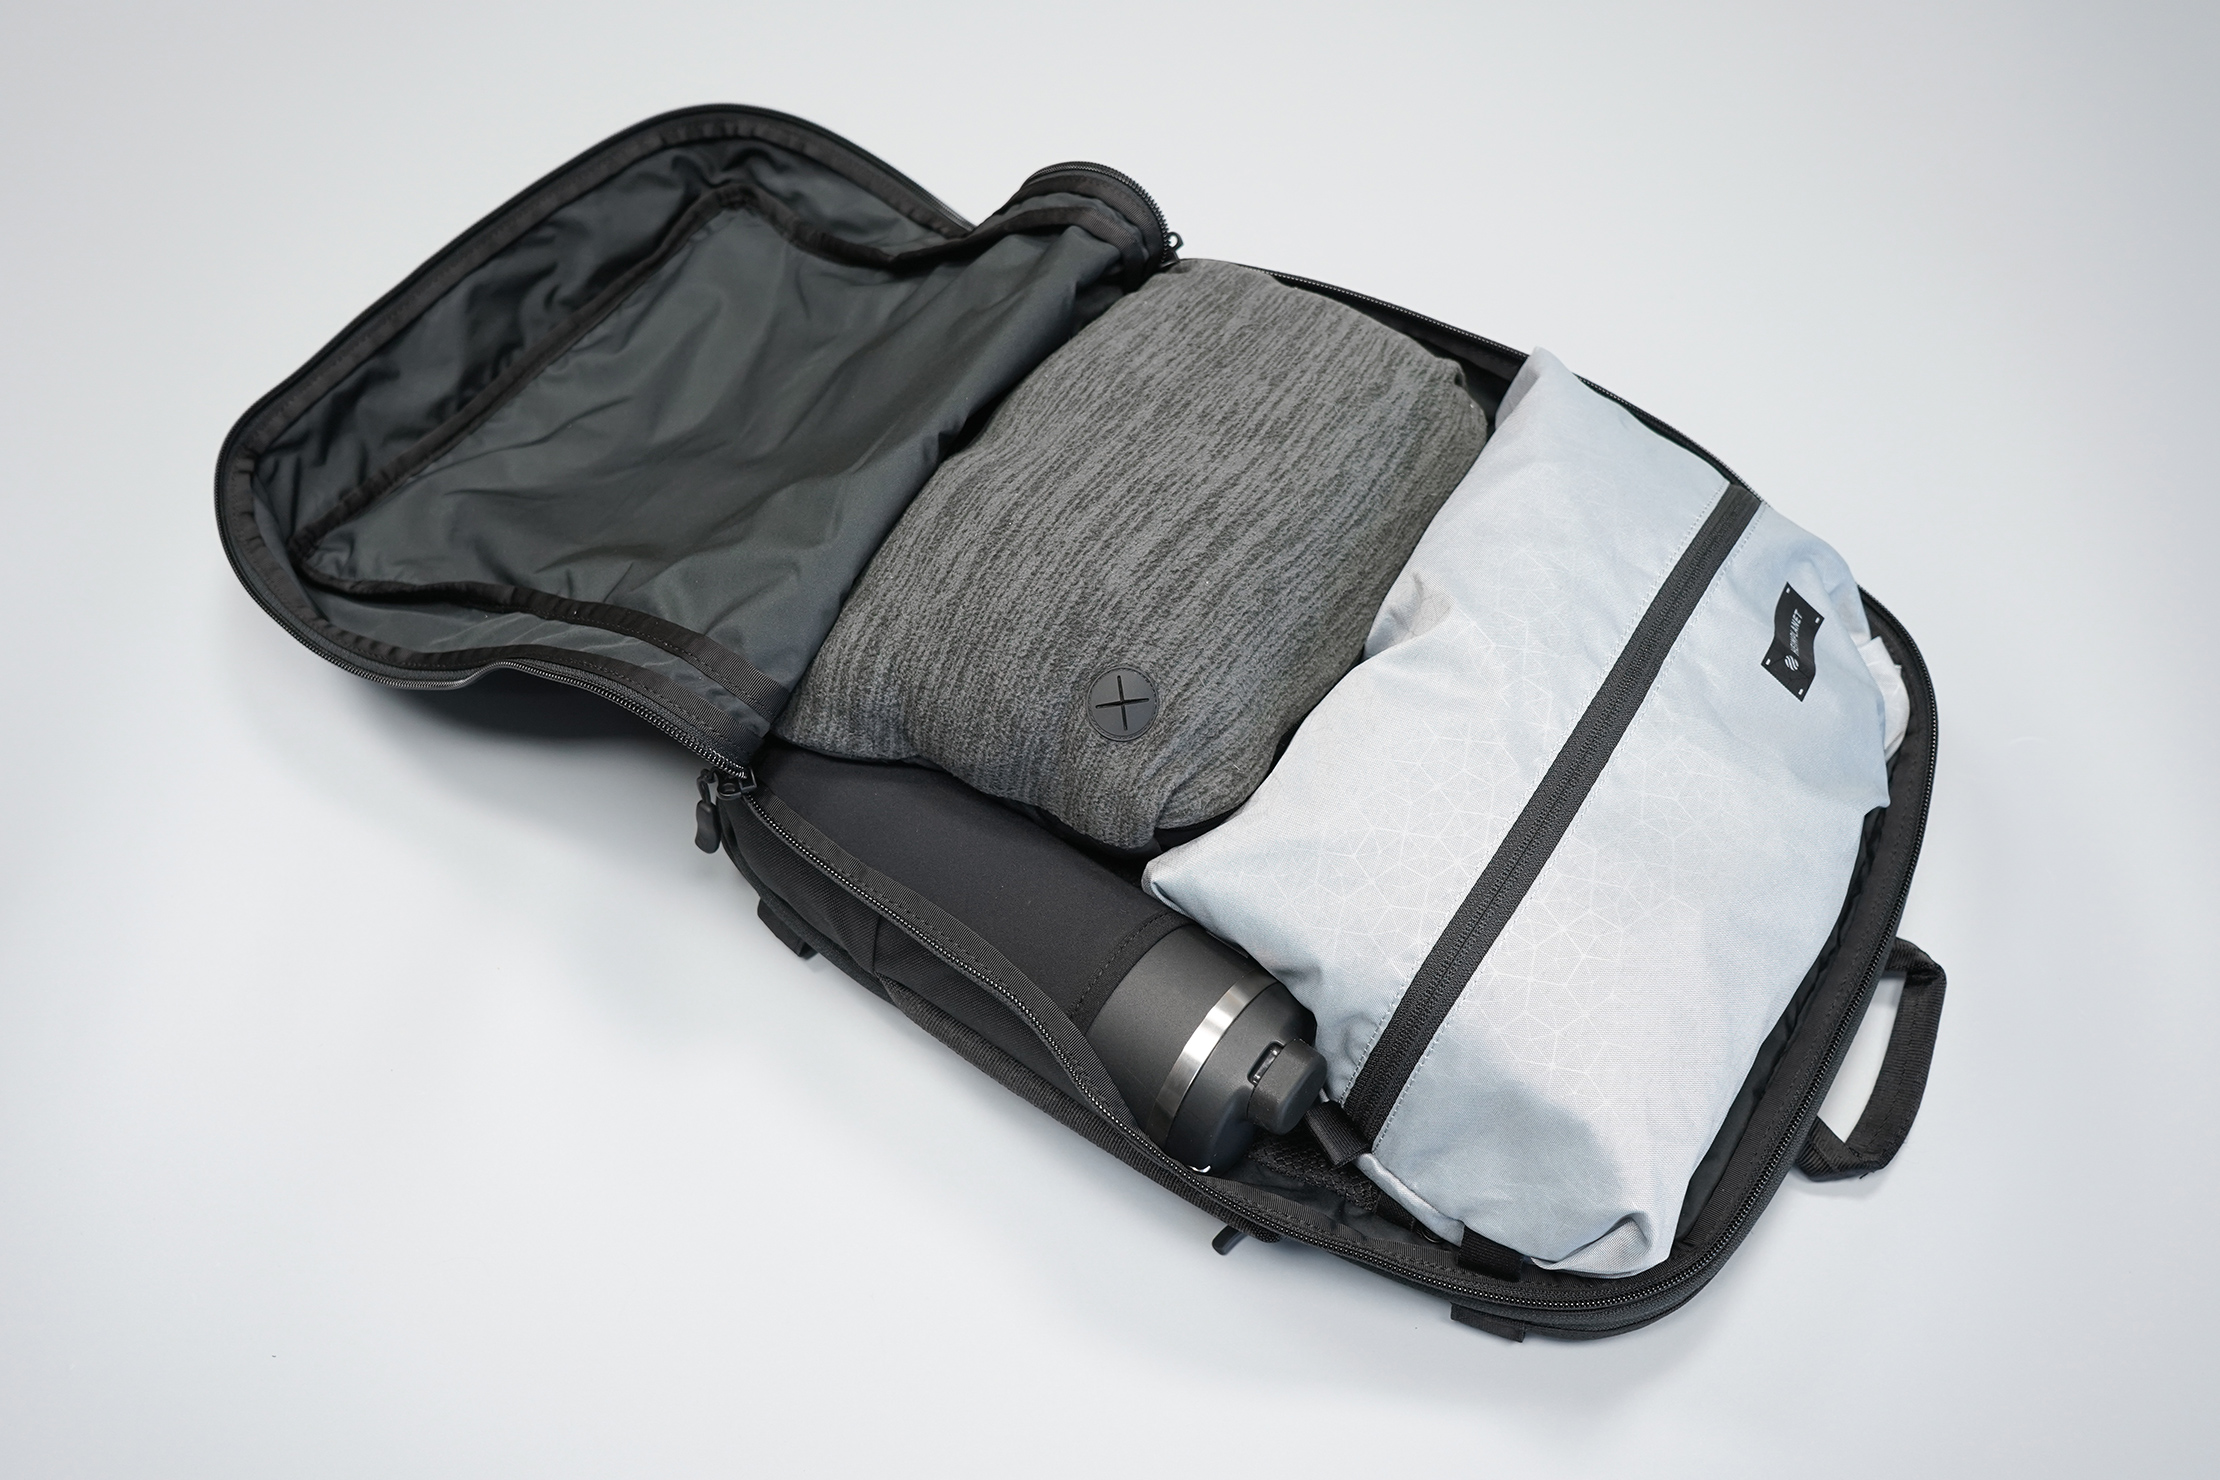 Minaal Daily 3.0 Bag Main Compartment